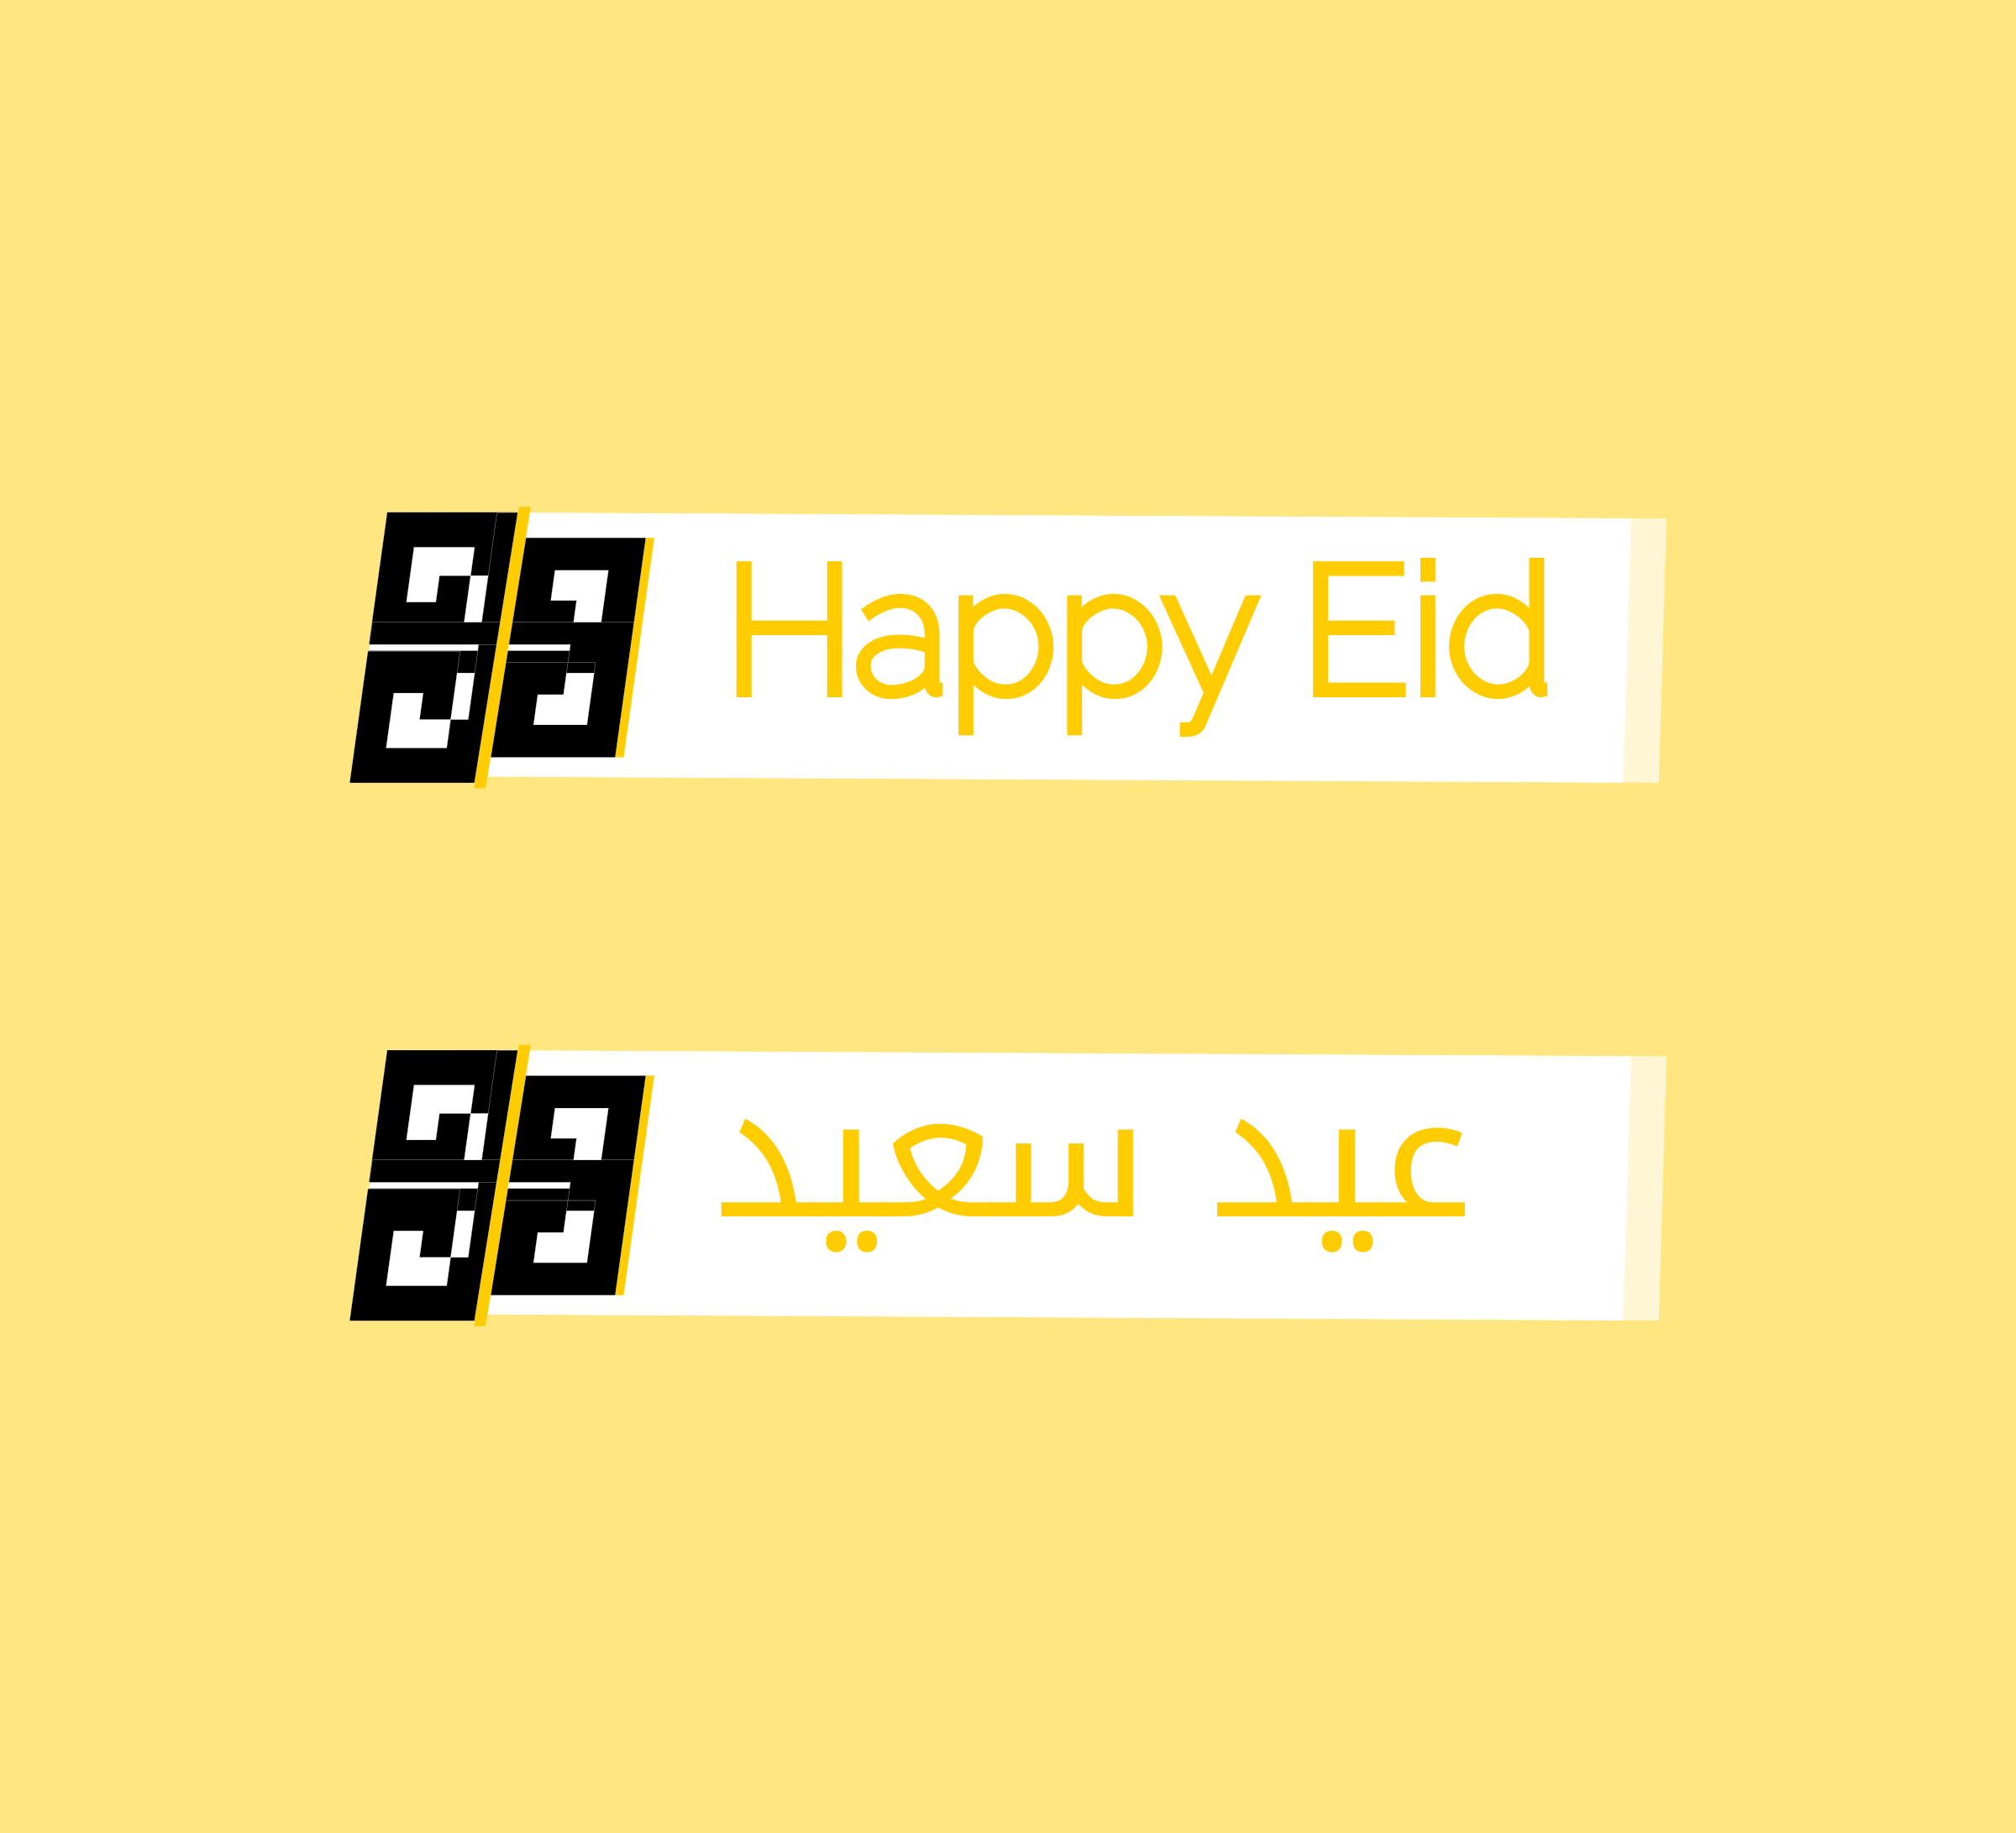 happy eid design  by QMC.media